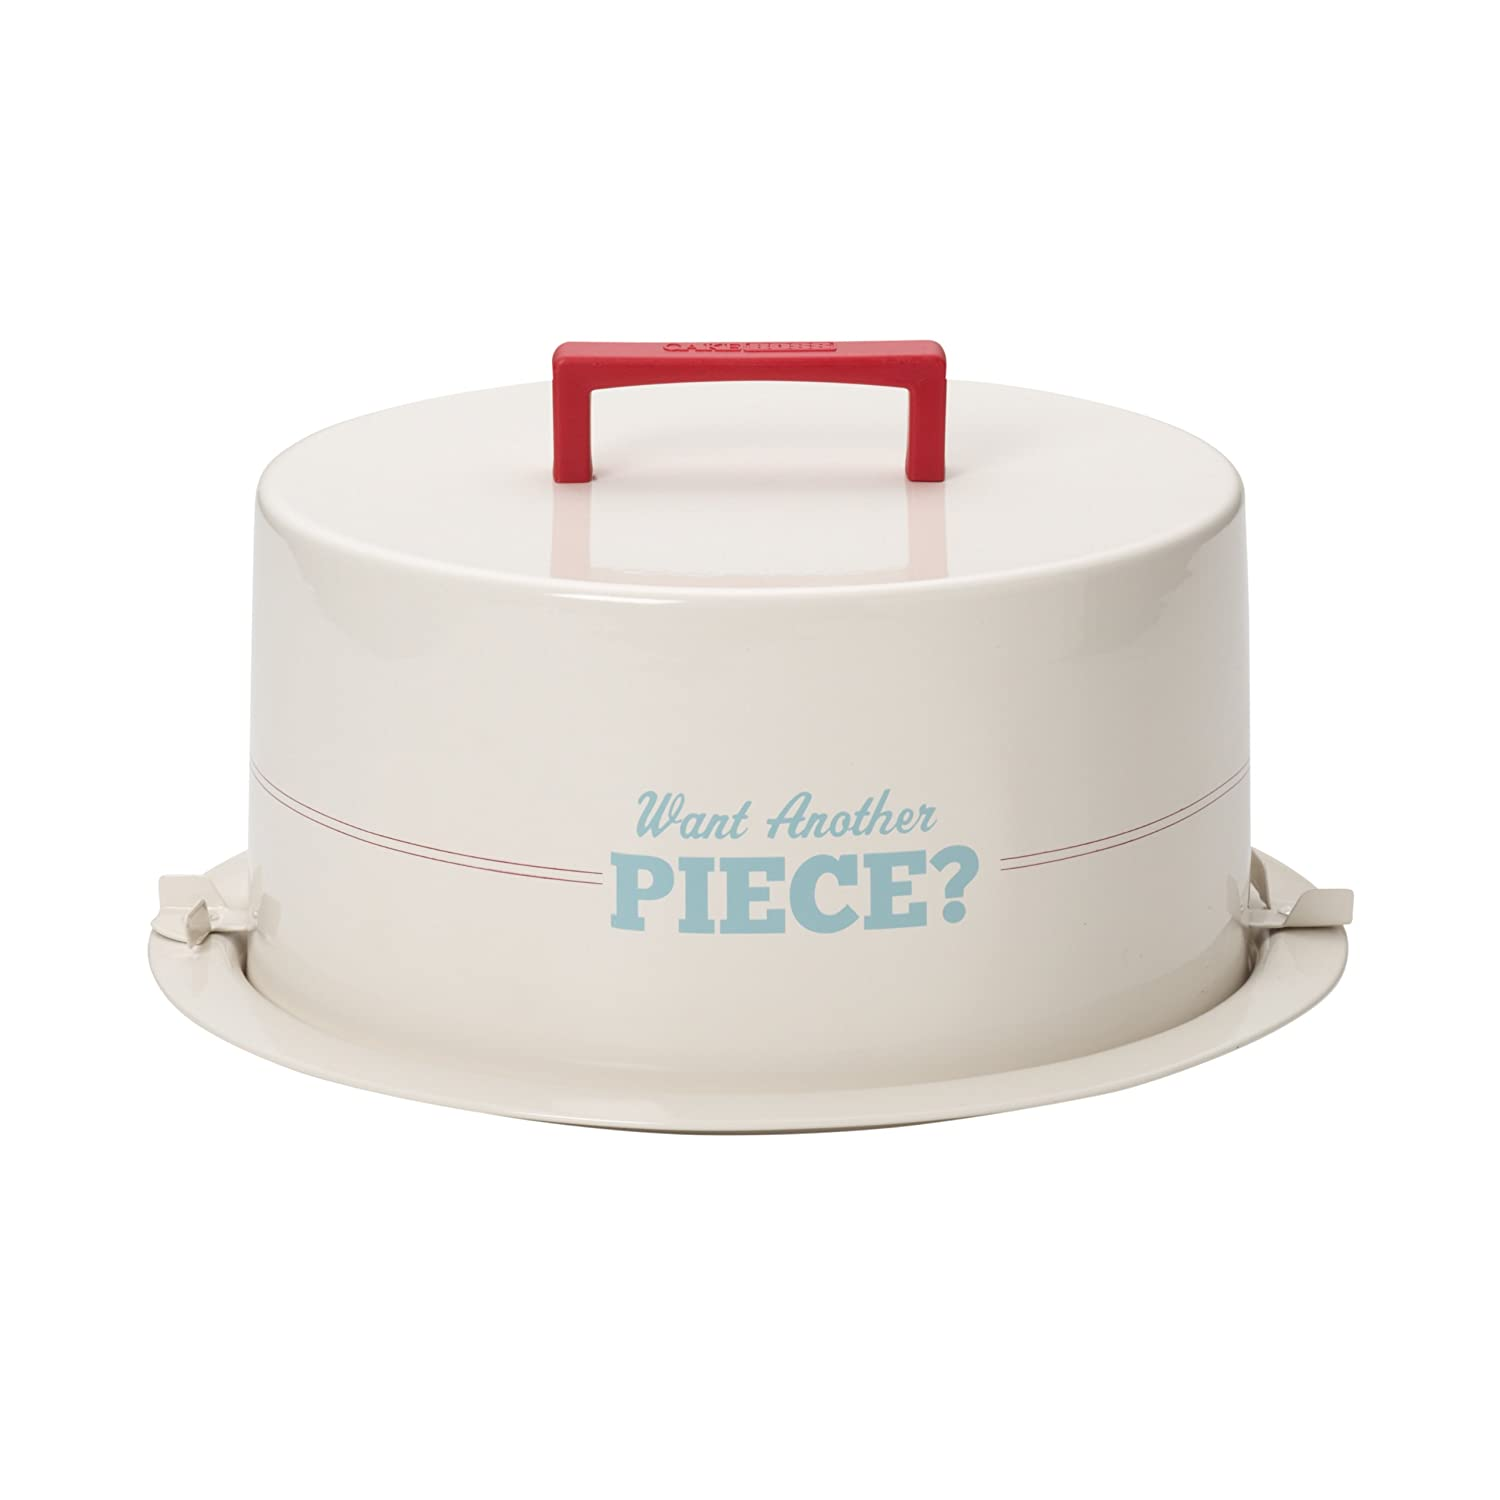 Cake Boss Novelty Serveware Cake Carrier Want Another Piece